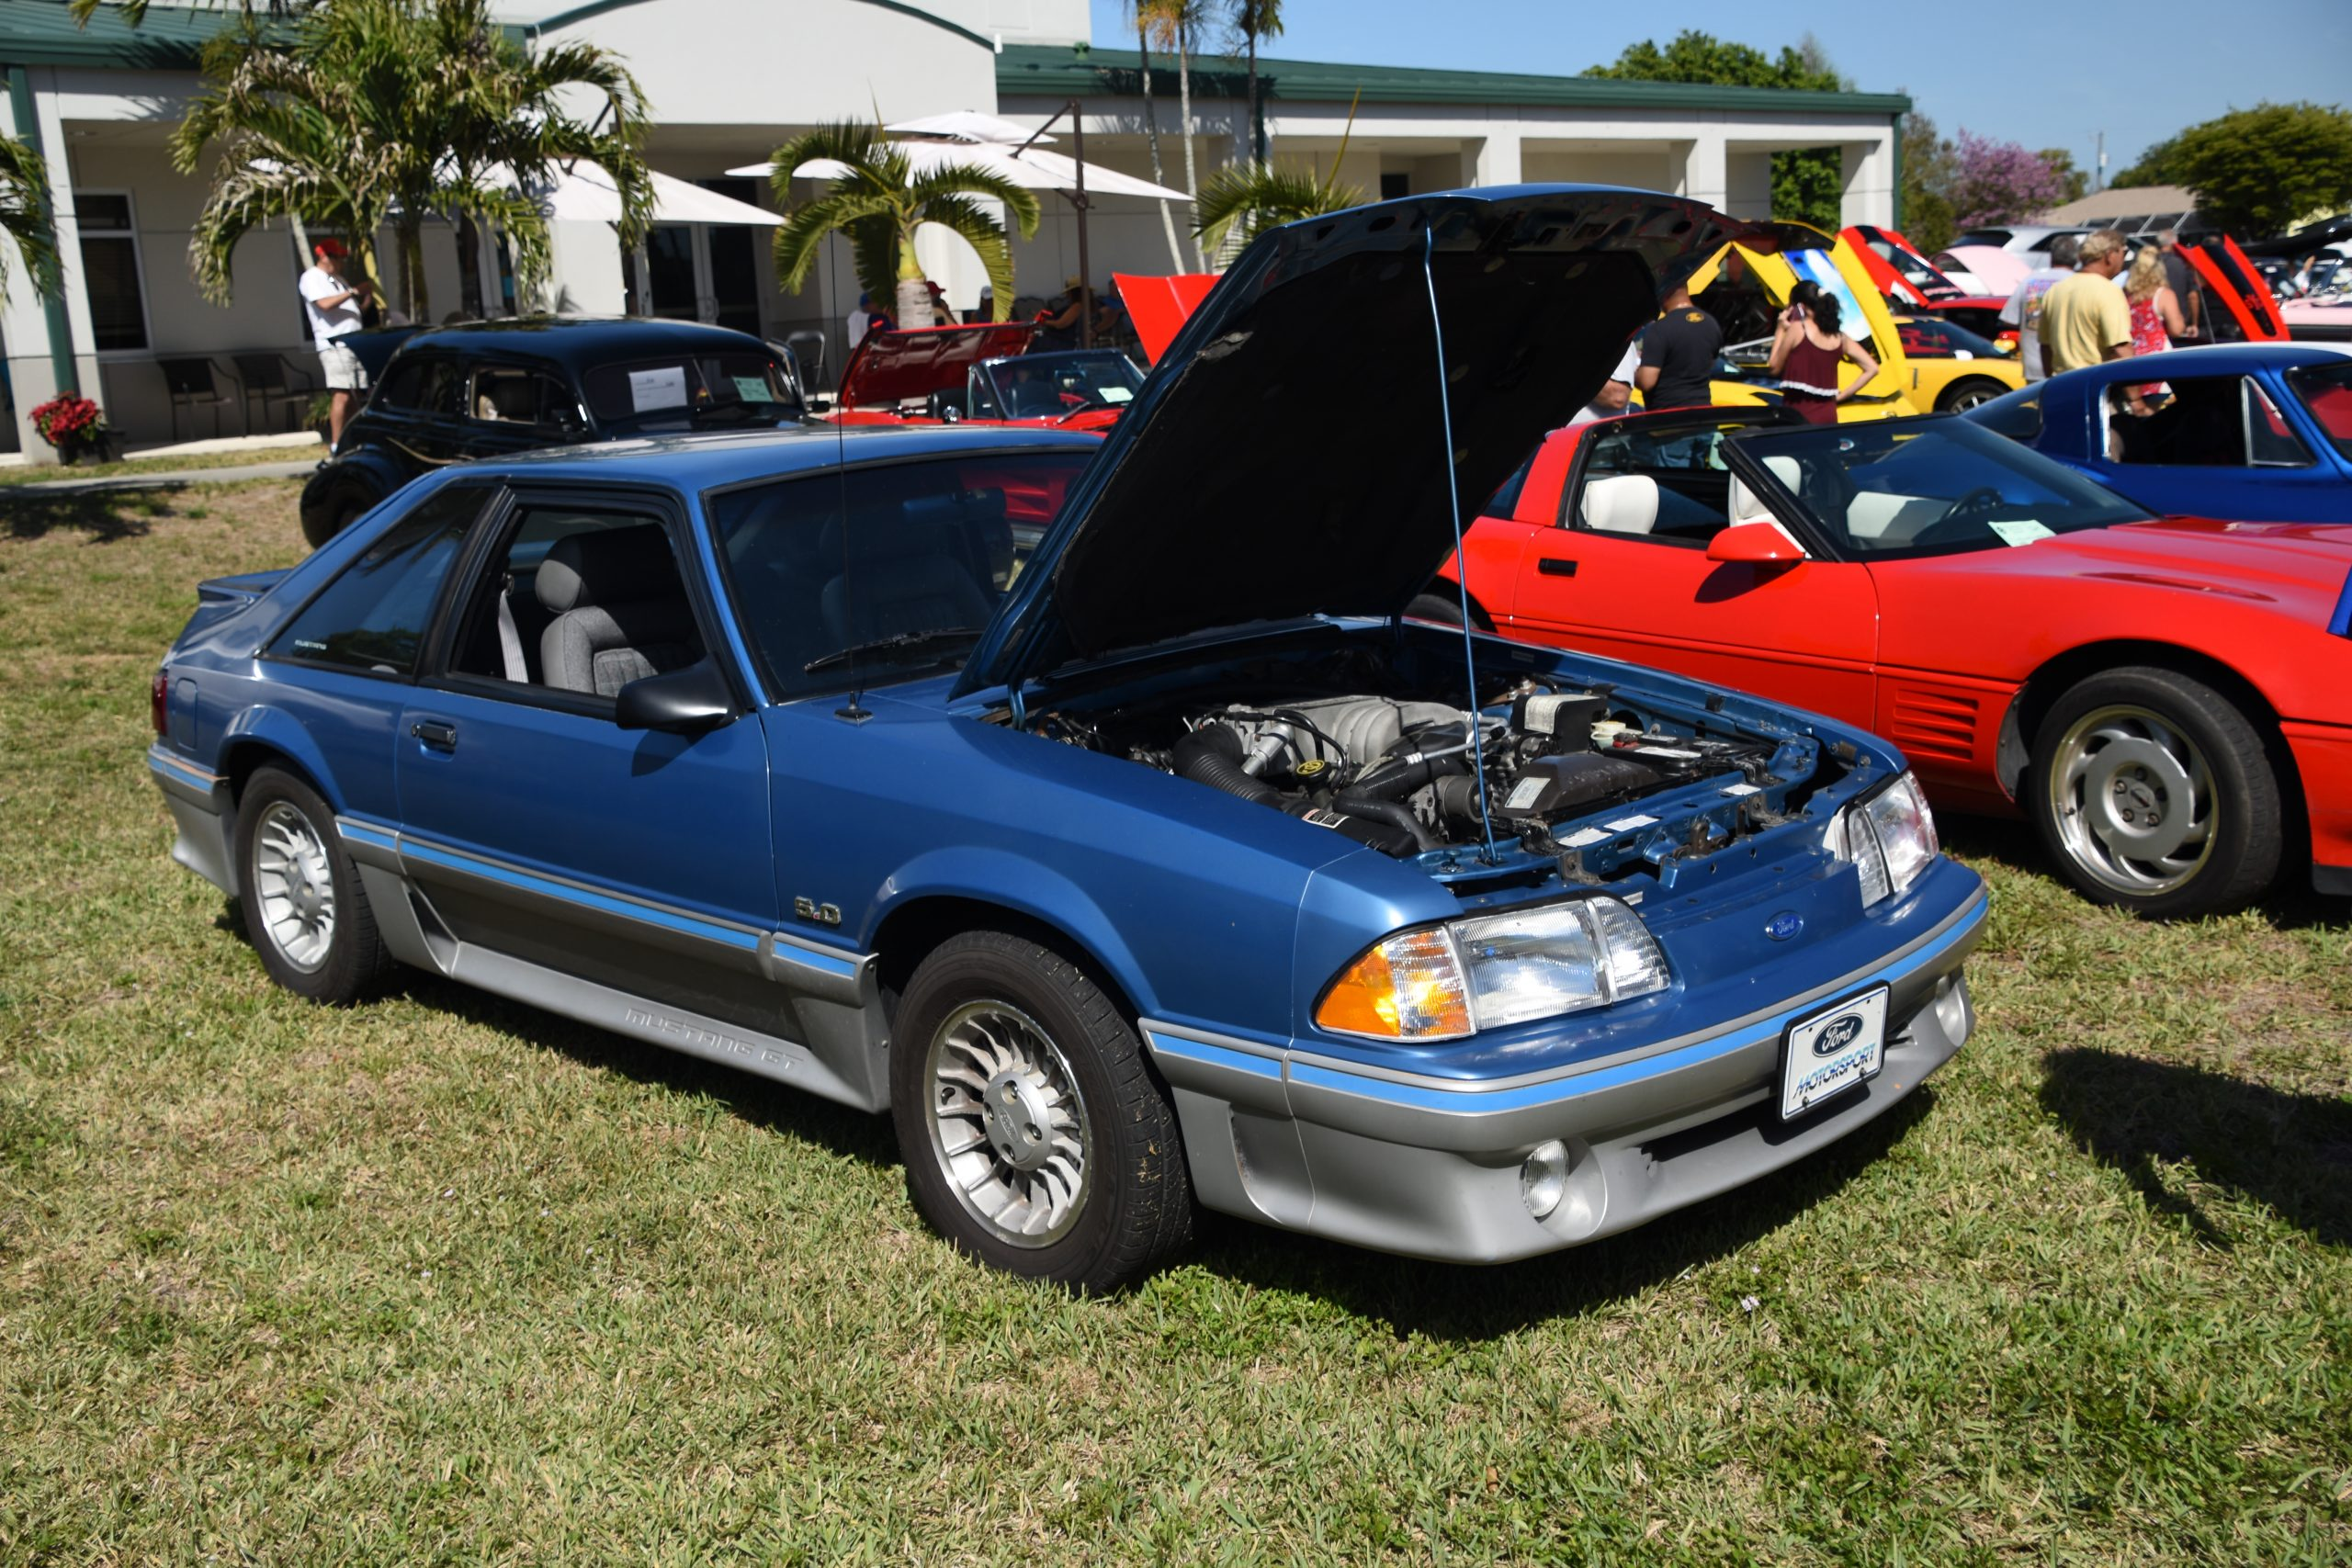 Blue 1988 Mustang GT with hood up